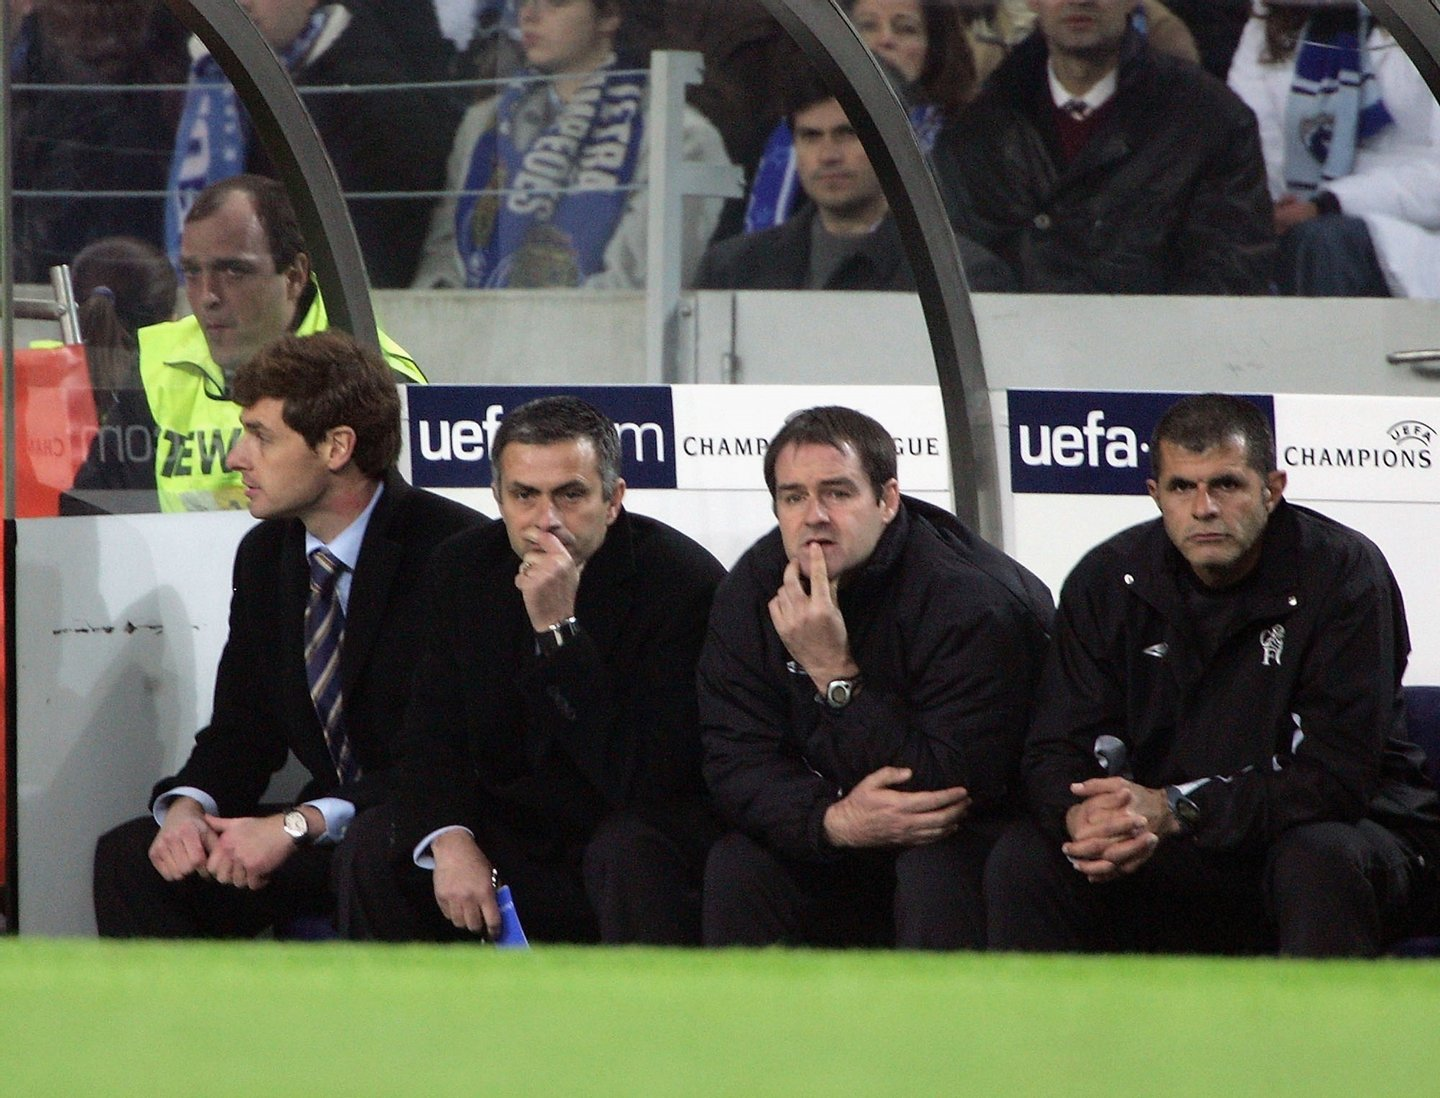 PORTO, PORTUGAL - DECEMBER 7: Jose Mourinho Manager of Chelsea during the Champions League Group H match between FC Porto and Chelsea at the Estadio Do Dragao on December 7, 2004 in Porto, Portugal. (Photo by Phil Cole/Getty Images)